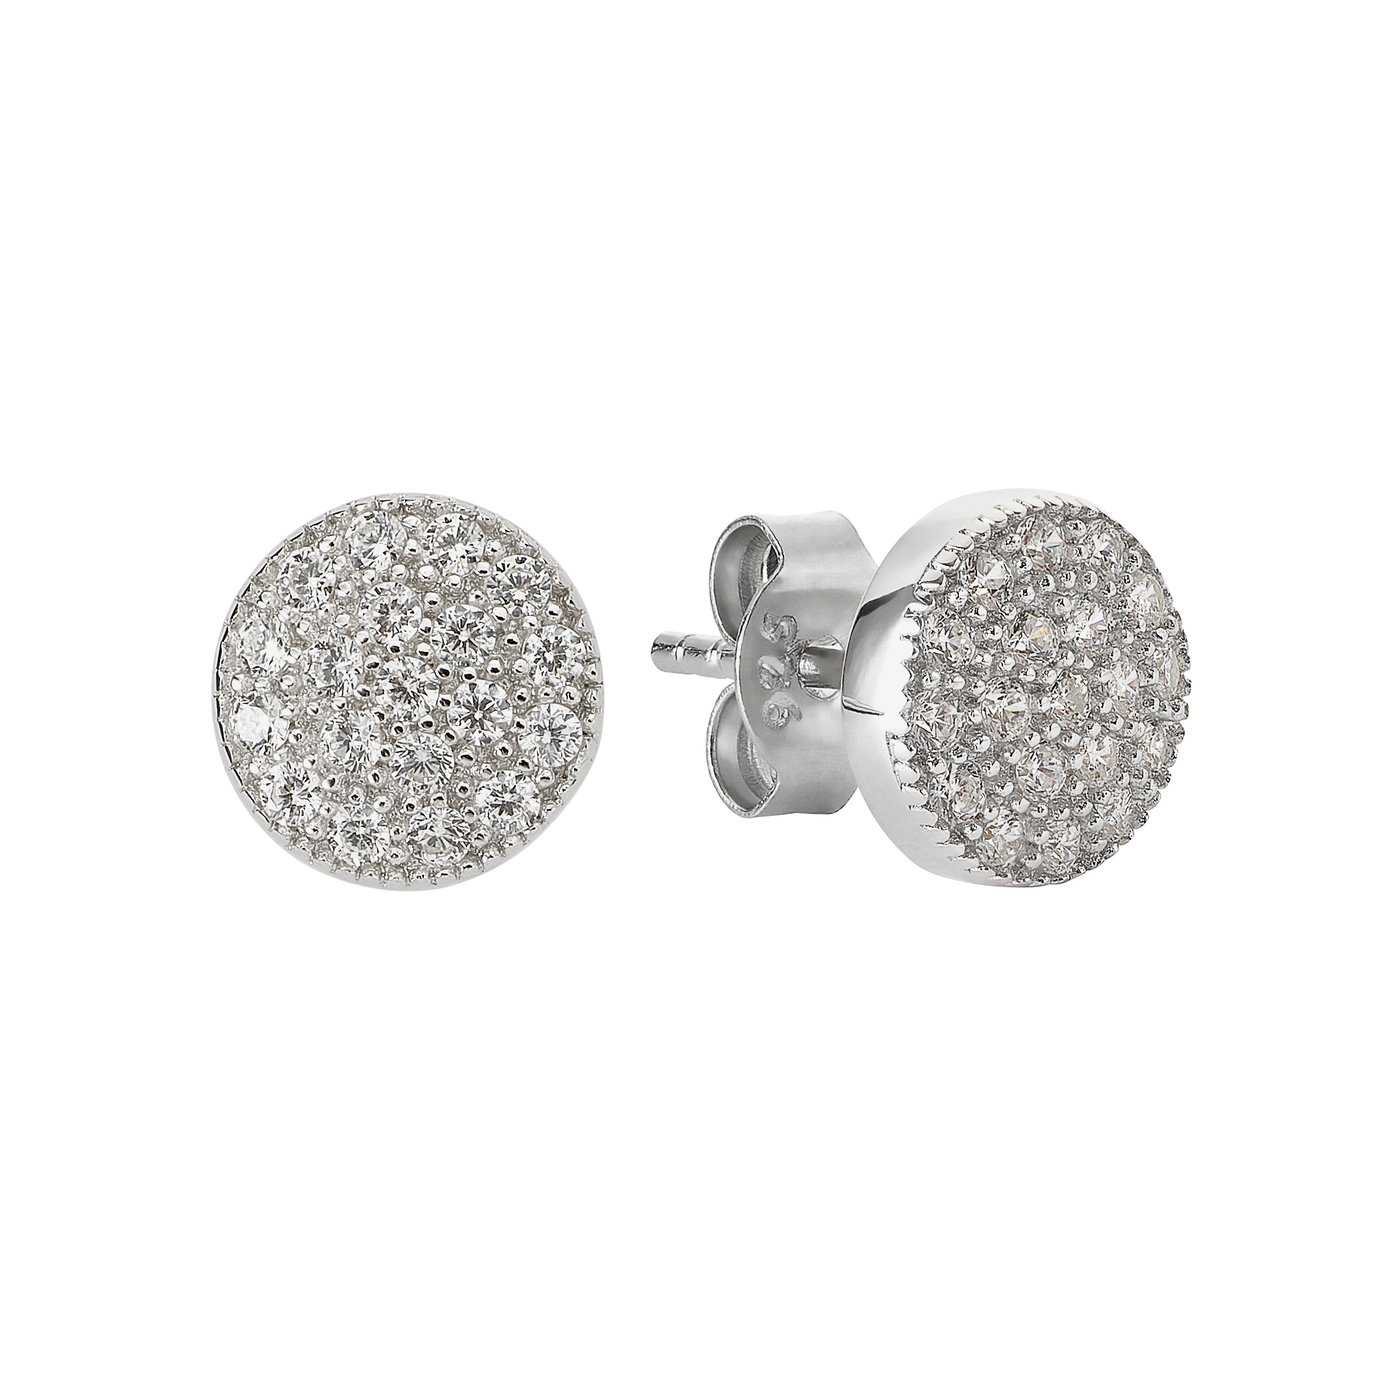 f4fac6d92 Revere Silver Round Pave Cubic Zirconia Stud Earrings from Revere